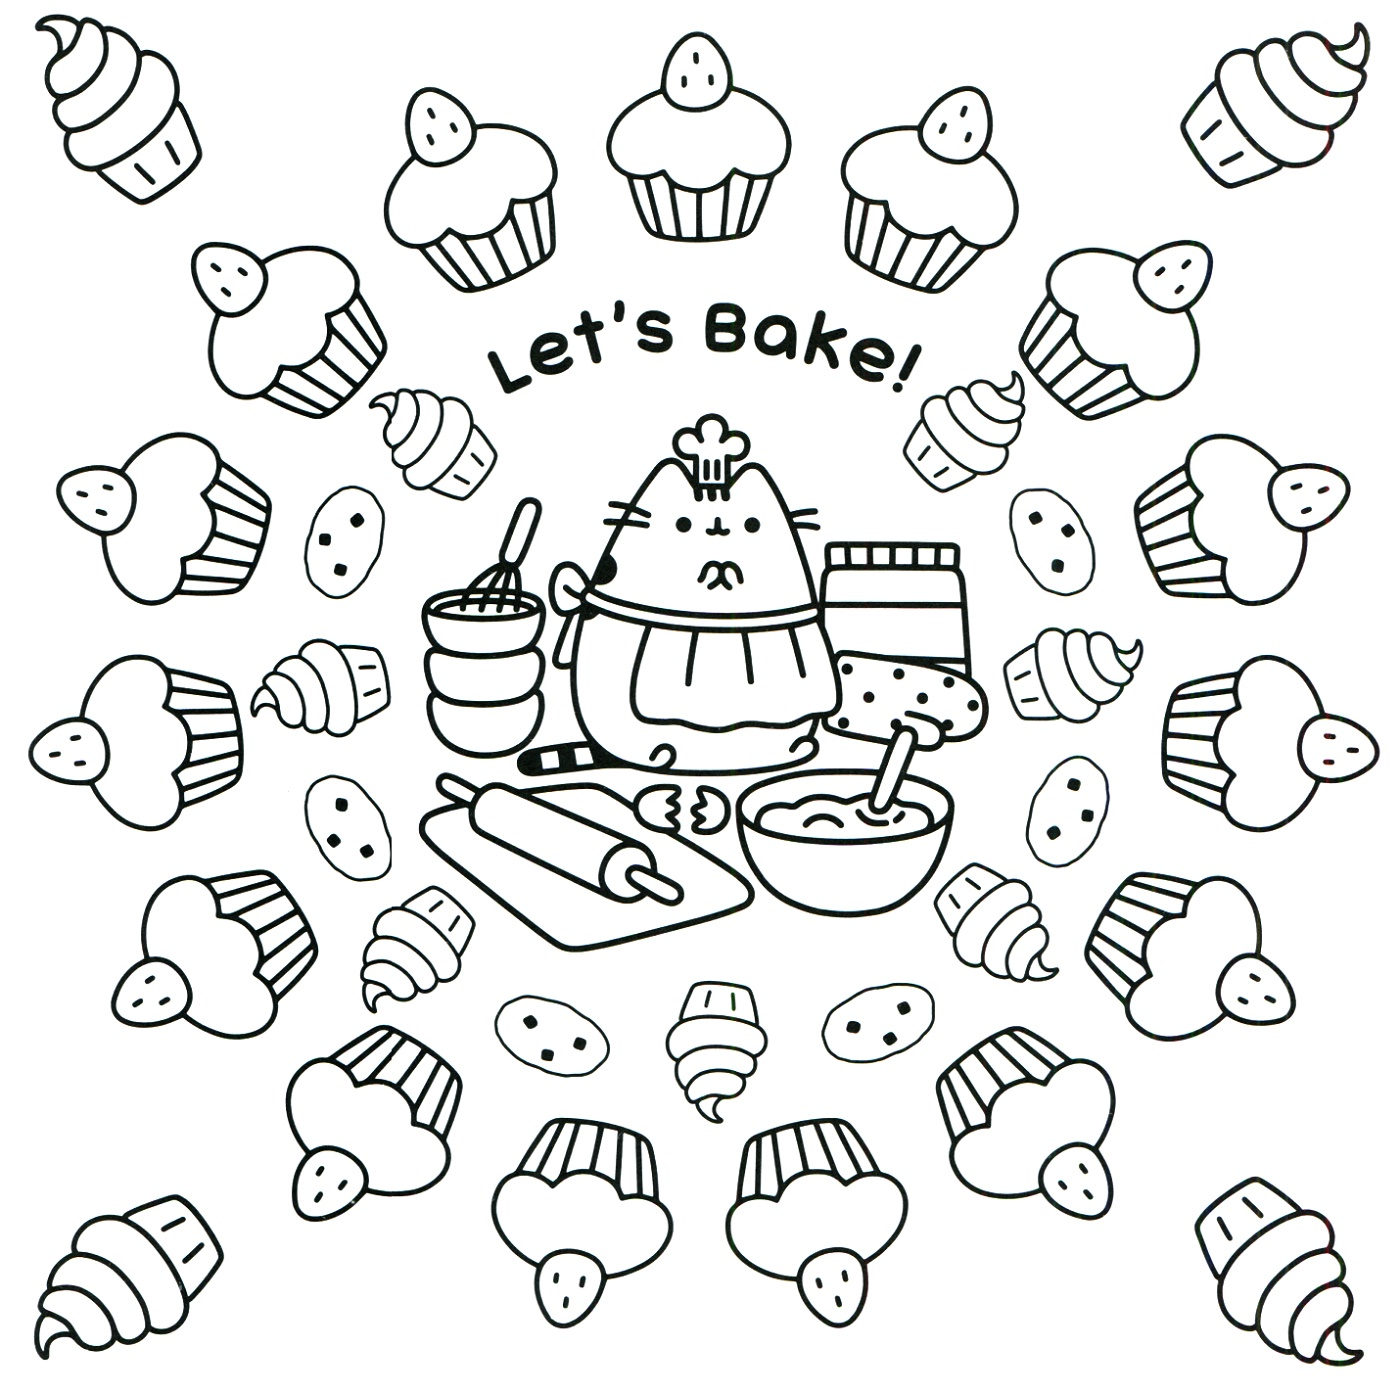 Pusheen Coloring Book Lets Bake